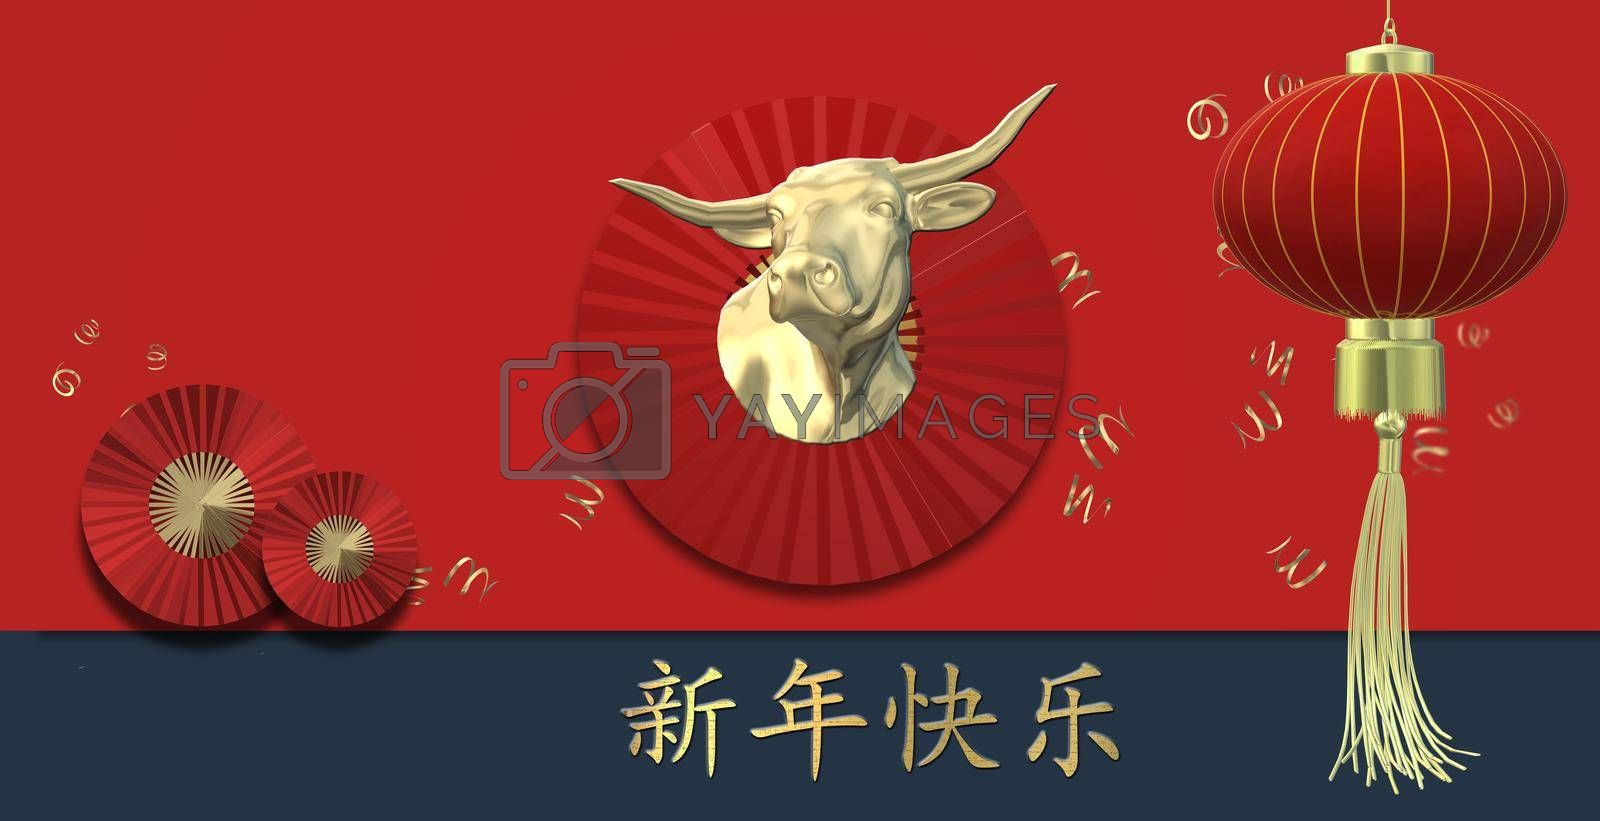 2021 Chinese new year, gold ox, digit 2021, lantern, fans on red background. Gold text Chinese translation Happy New Year. Design for oriental 2021 new year card. 3D rendering